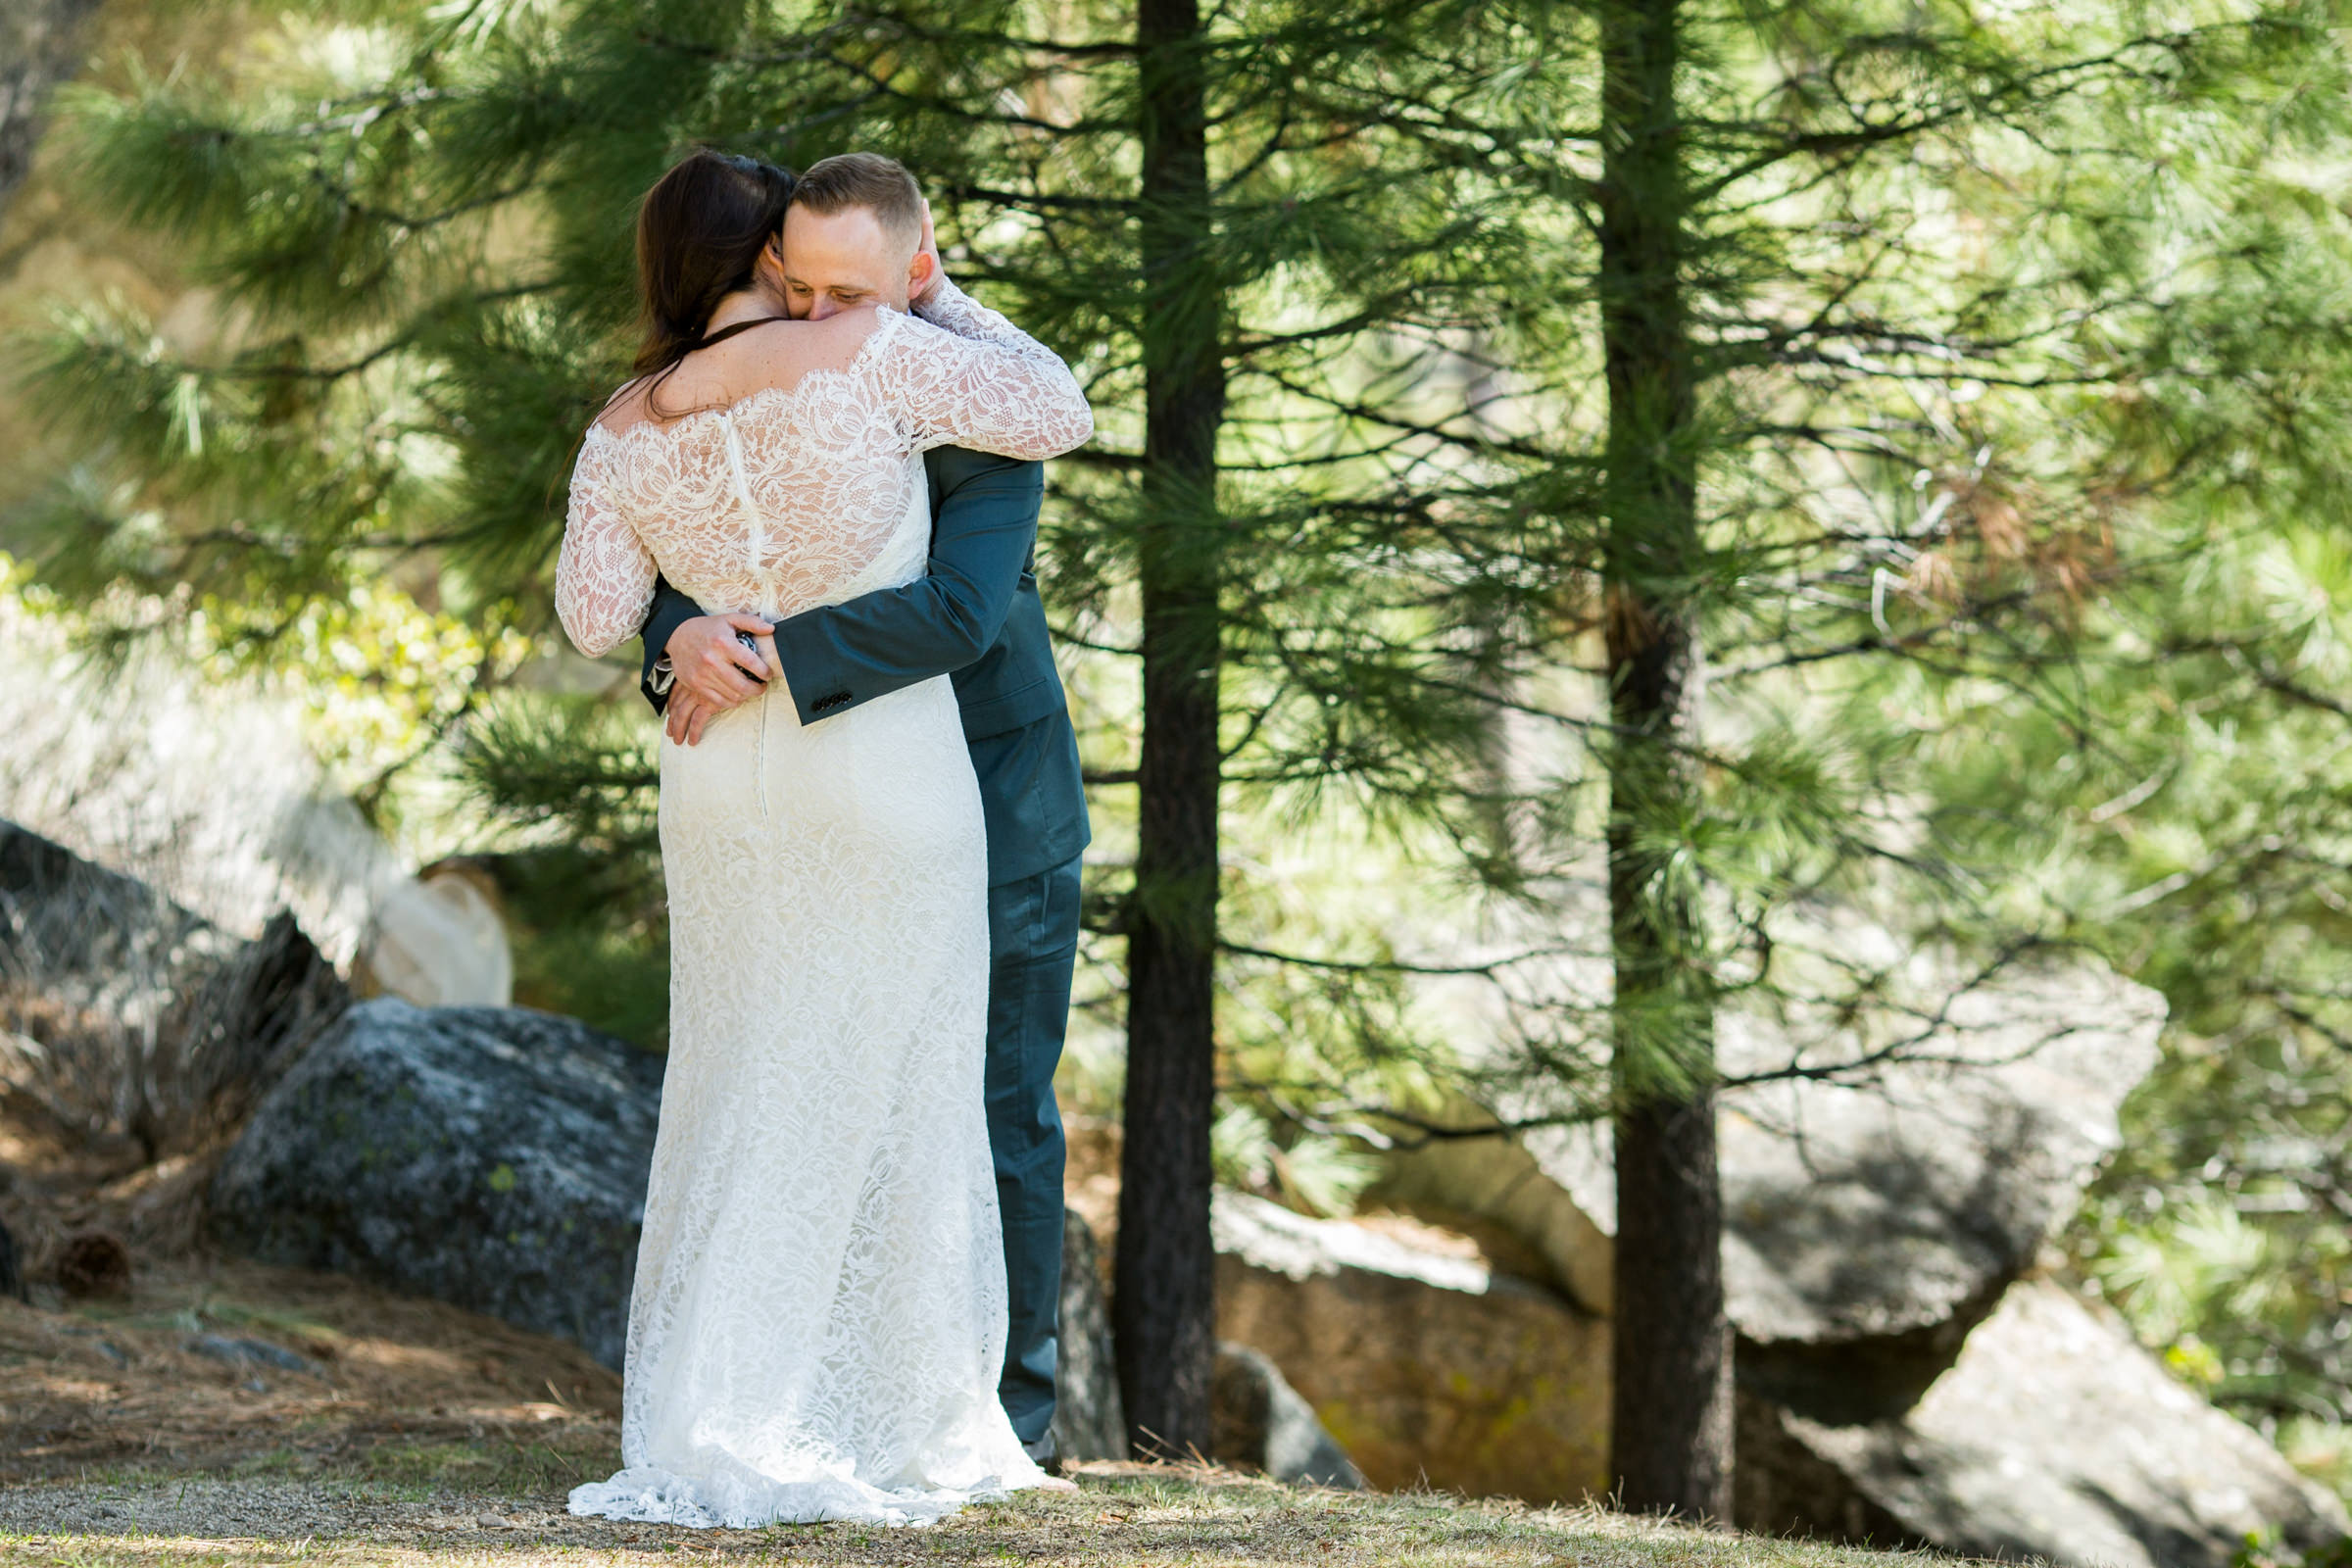 lake-tahoe-wedding-photographer-photography-best-top-north-city-kevin-sawyer-reno-truckee-bestof-incline-village-first-look-charthouse-chart-house-love-bride-groom-forest